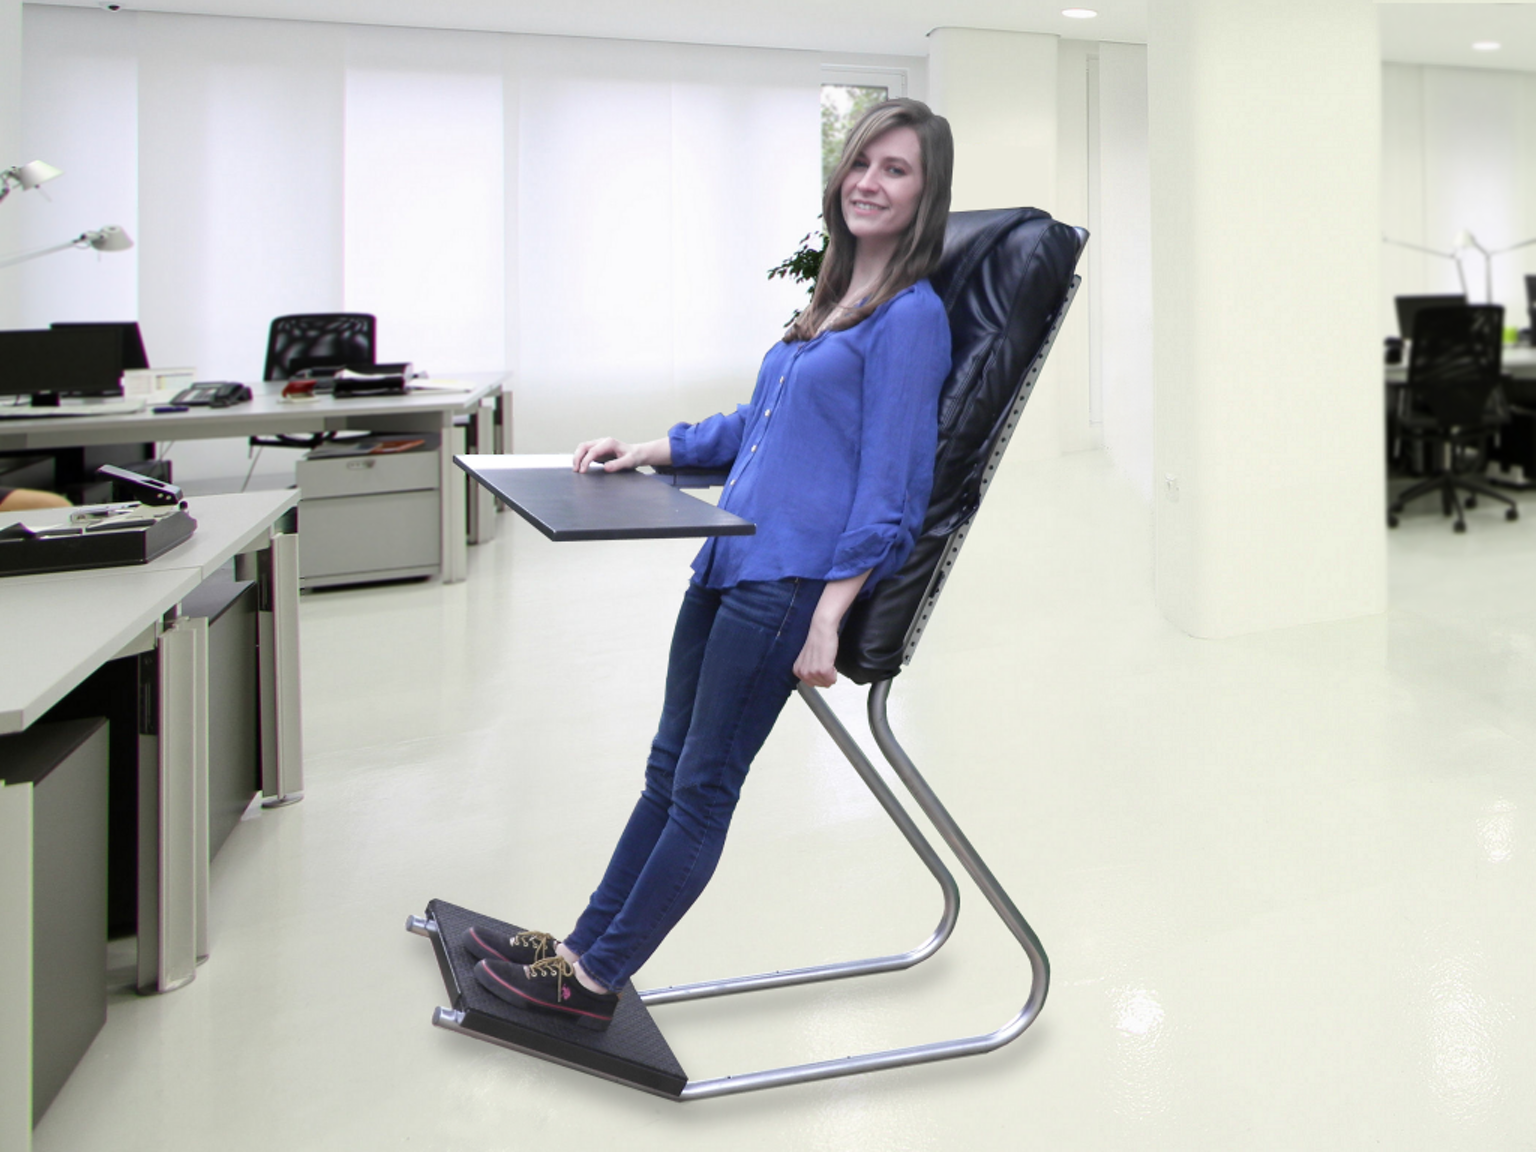 LeanChair: The portable, reclining standing desk